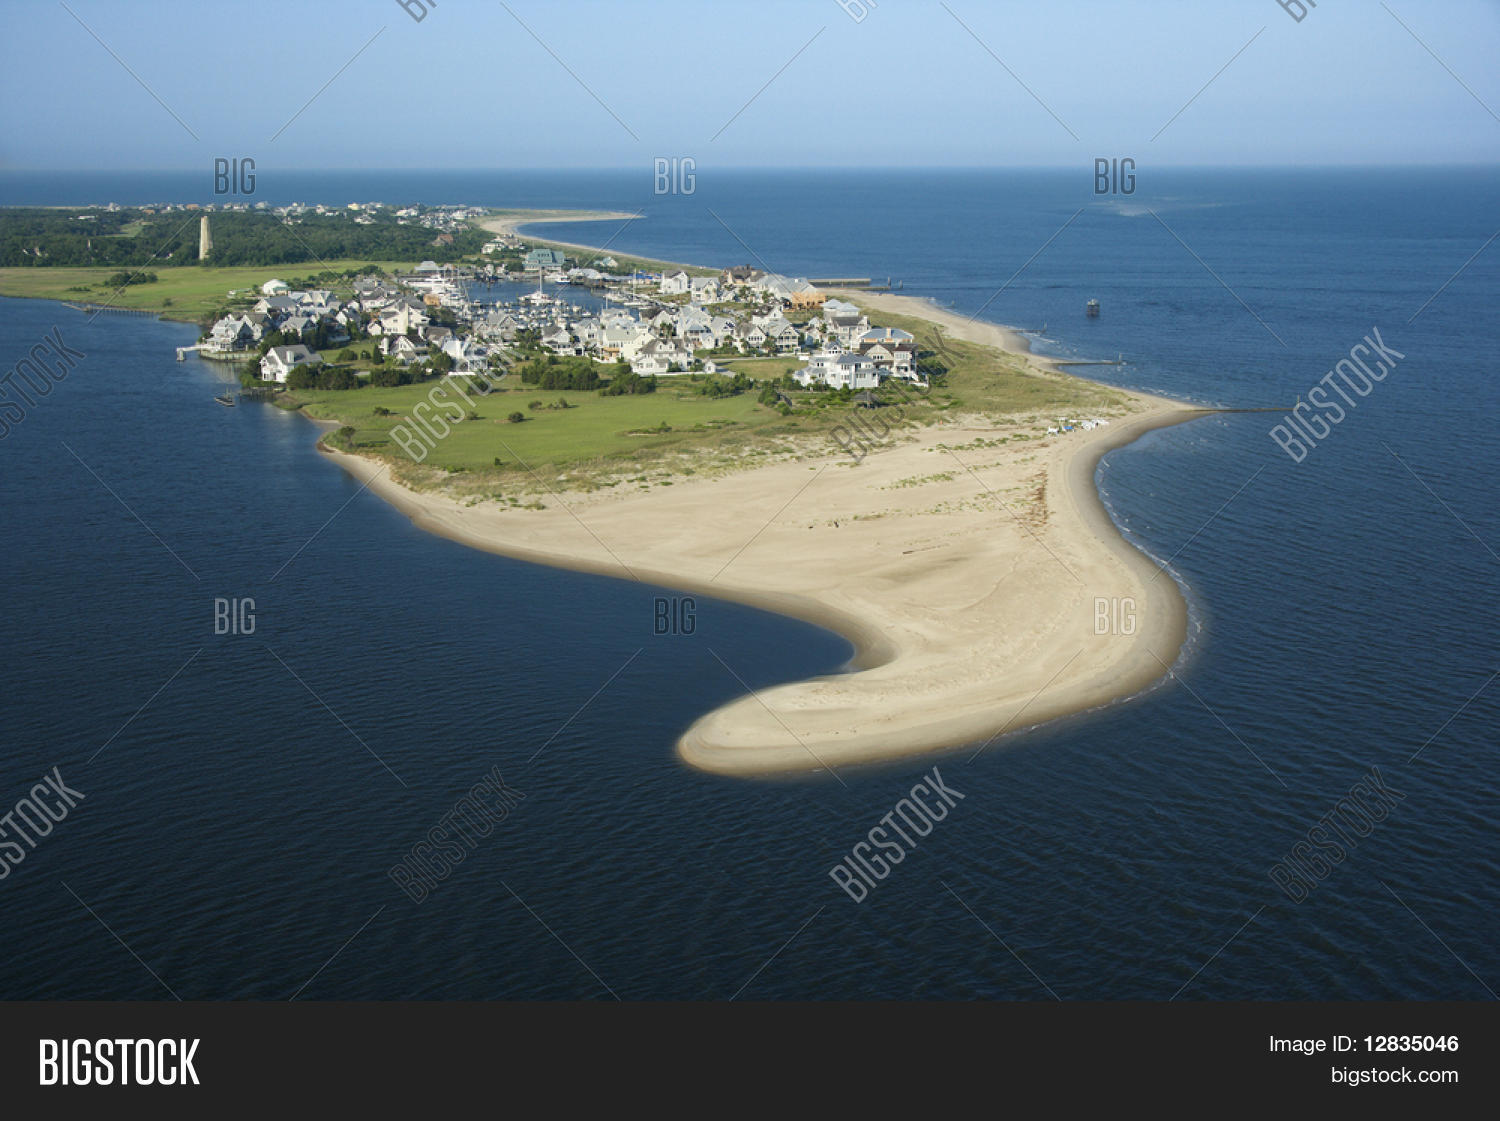 Aerial View Of Beach And Residential Community On Bald Head Island North Carolina